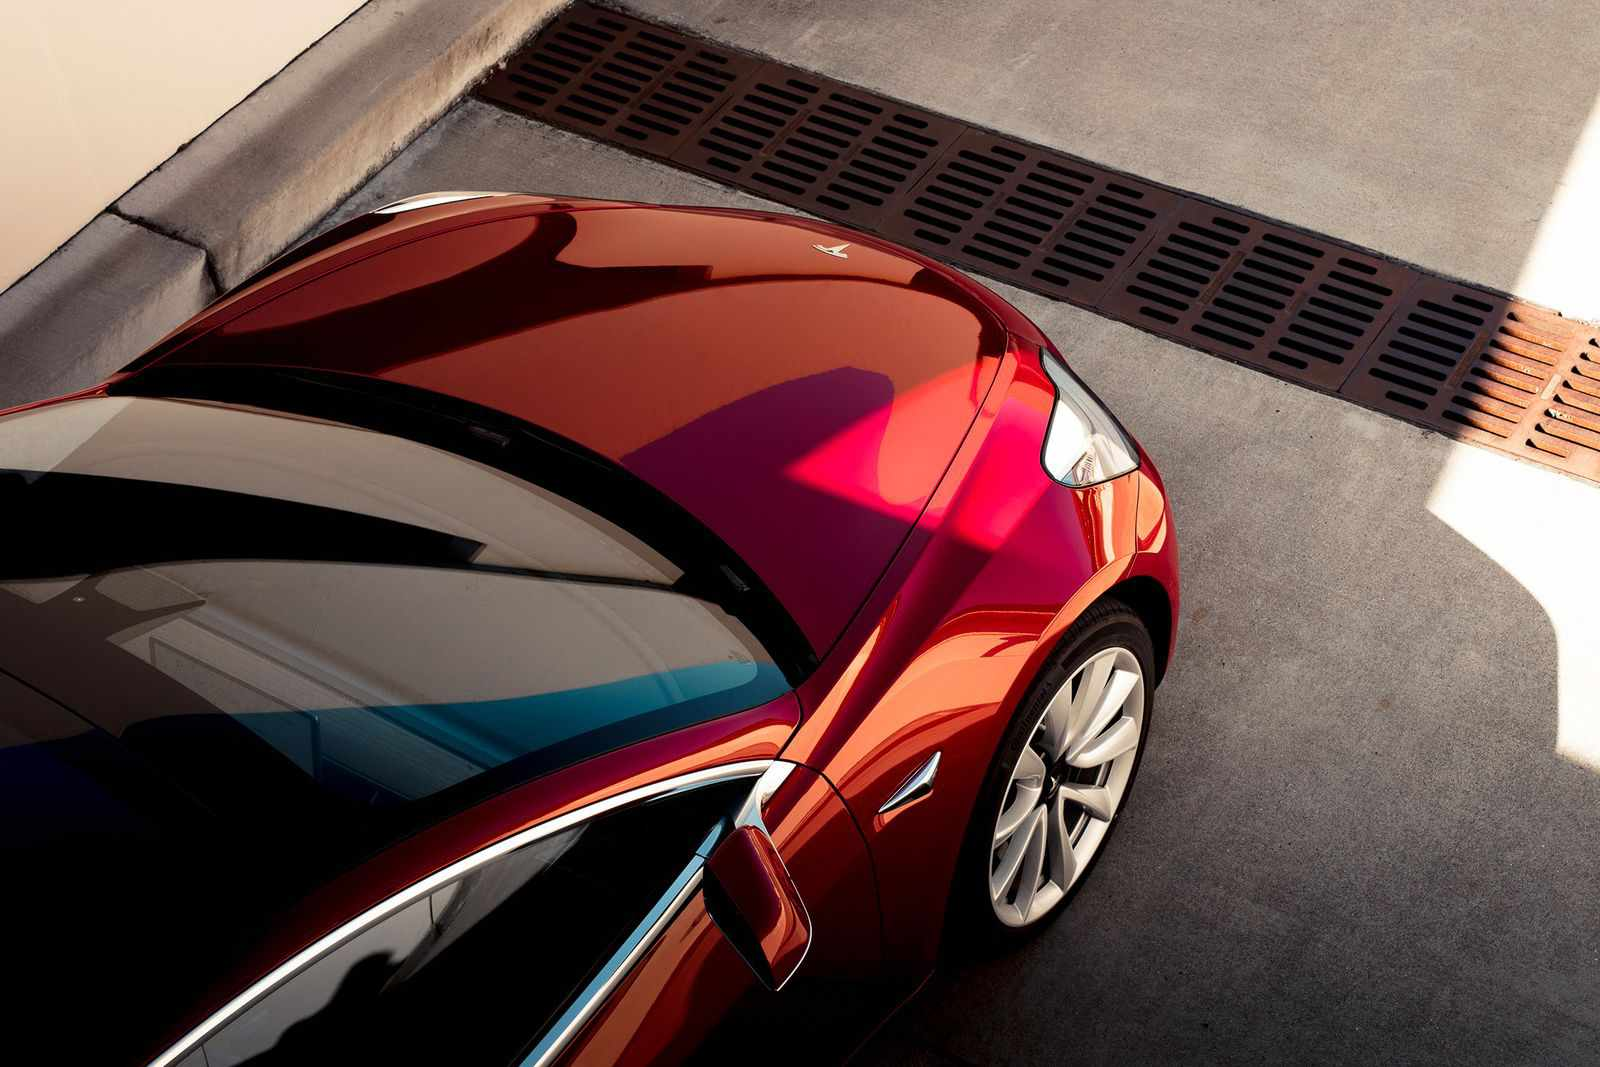 Tesla 3 from above